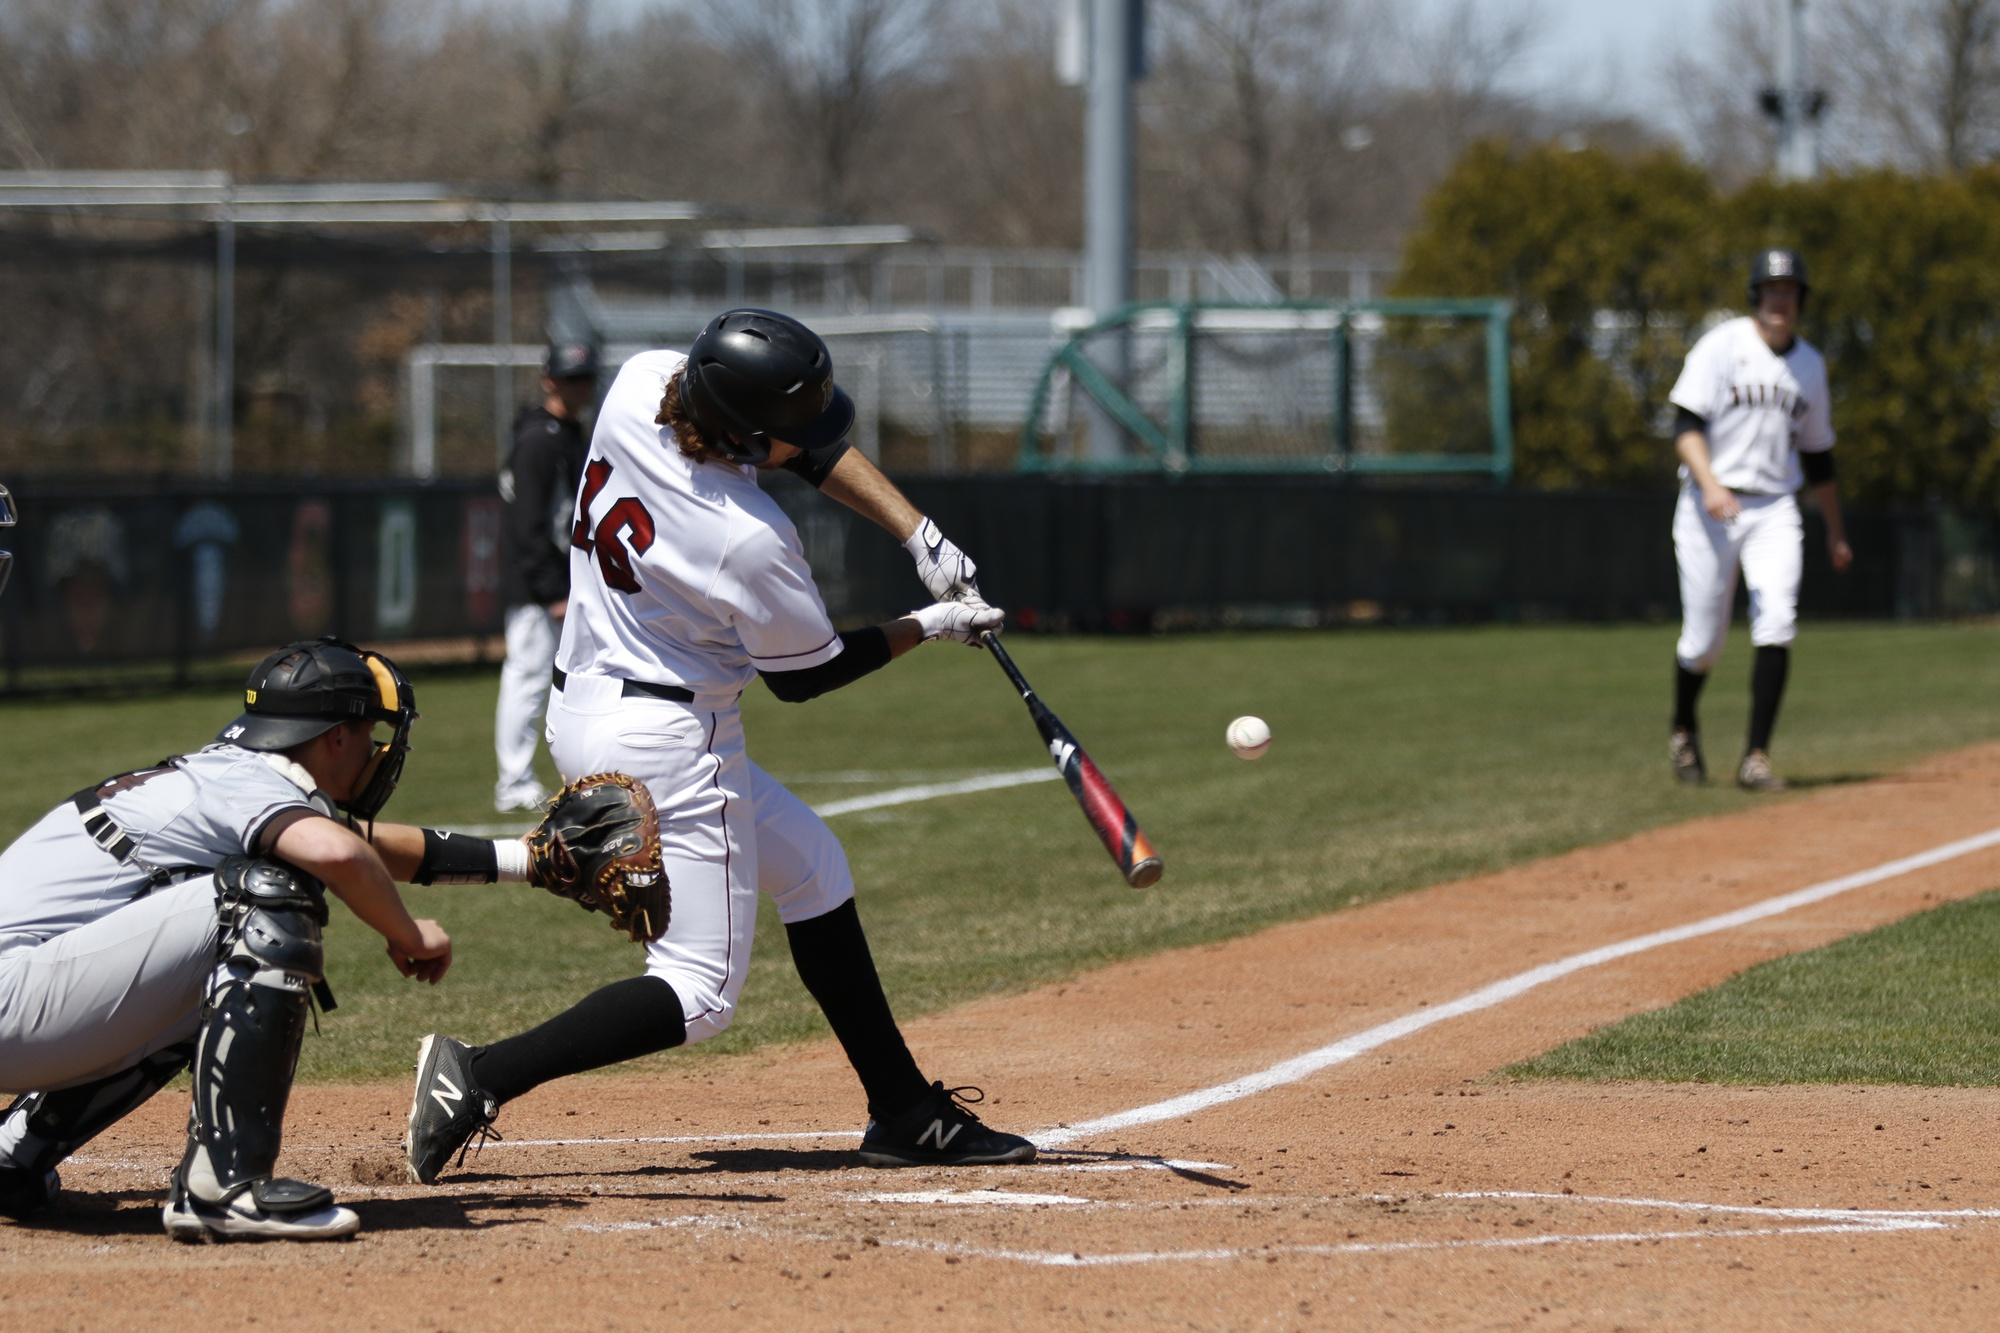 Junior OF Jake Suddleson hones in on a pitch against Brown last spring.